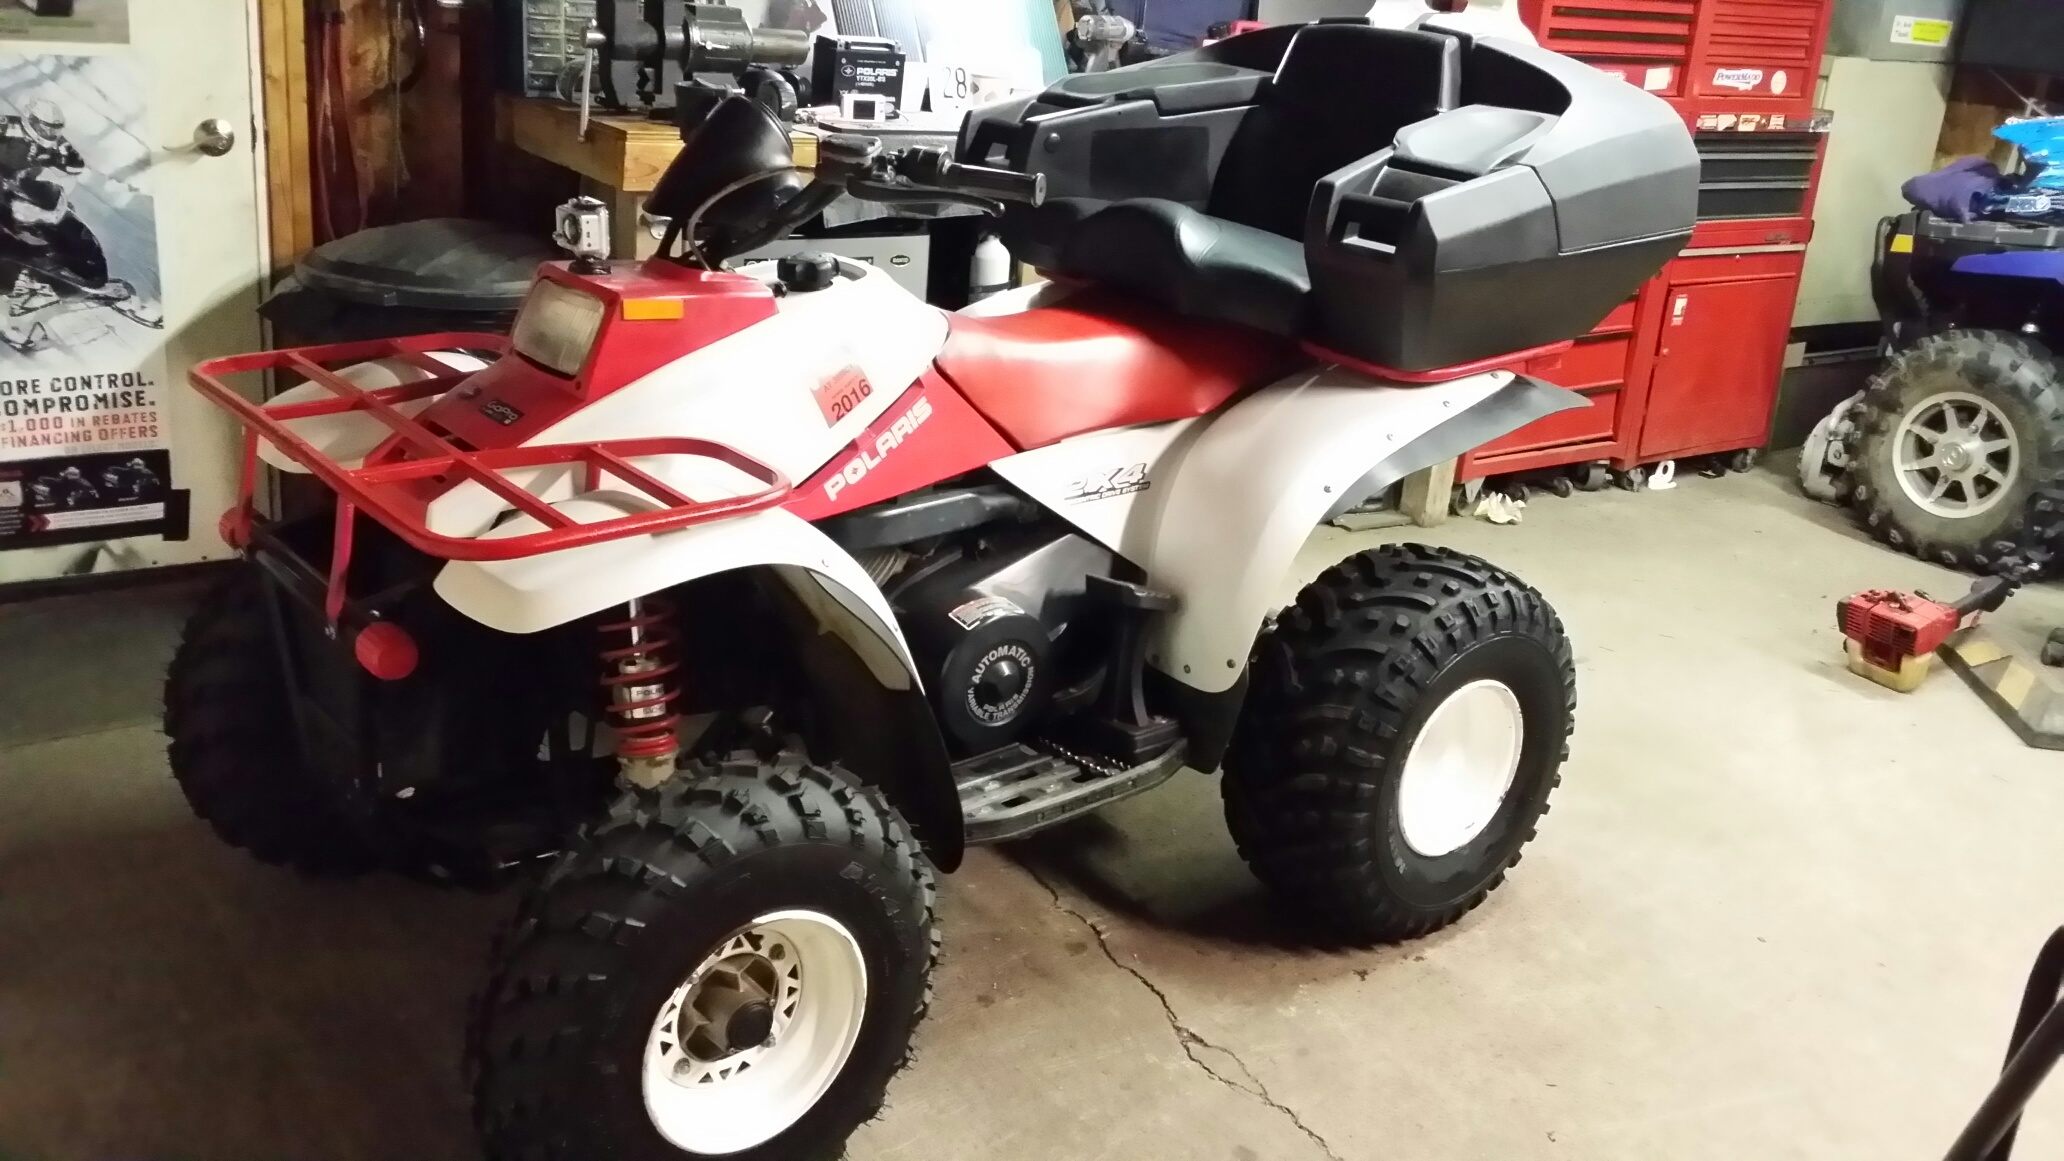 Polaris 325 Atv Mirror Free Download Magnum Wiring Diagram Finished Restore On 2001 Trail Boss Forum